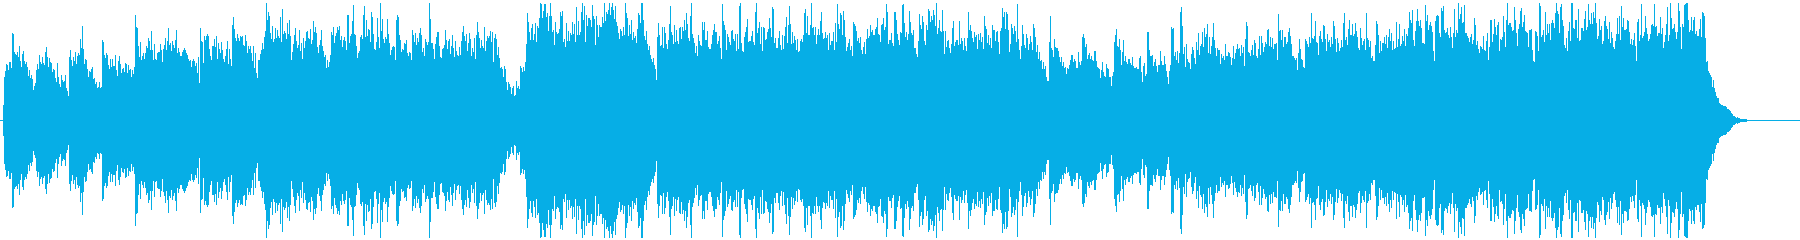 The Storm Of Life's reproduced waveform